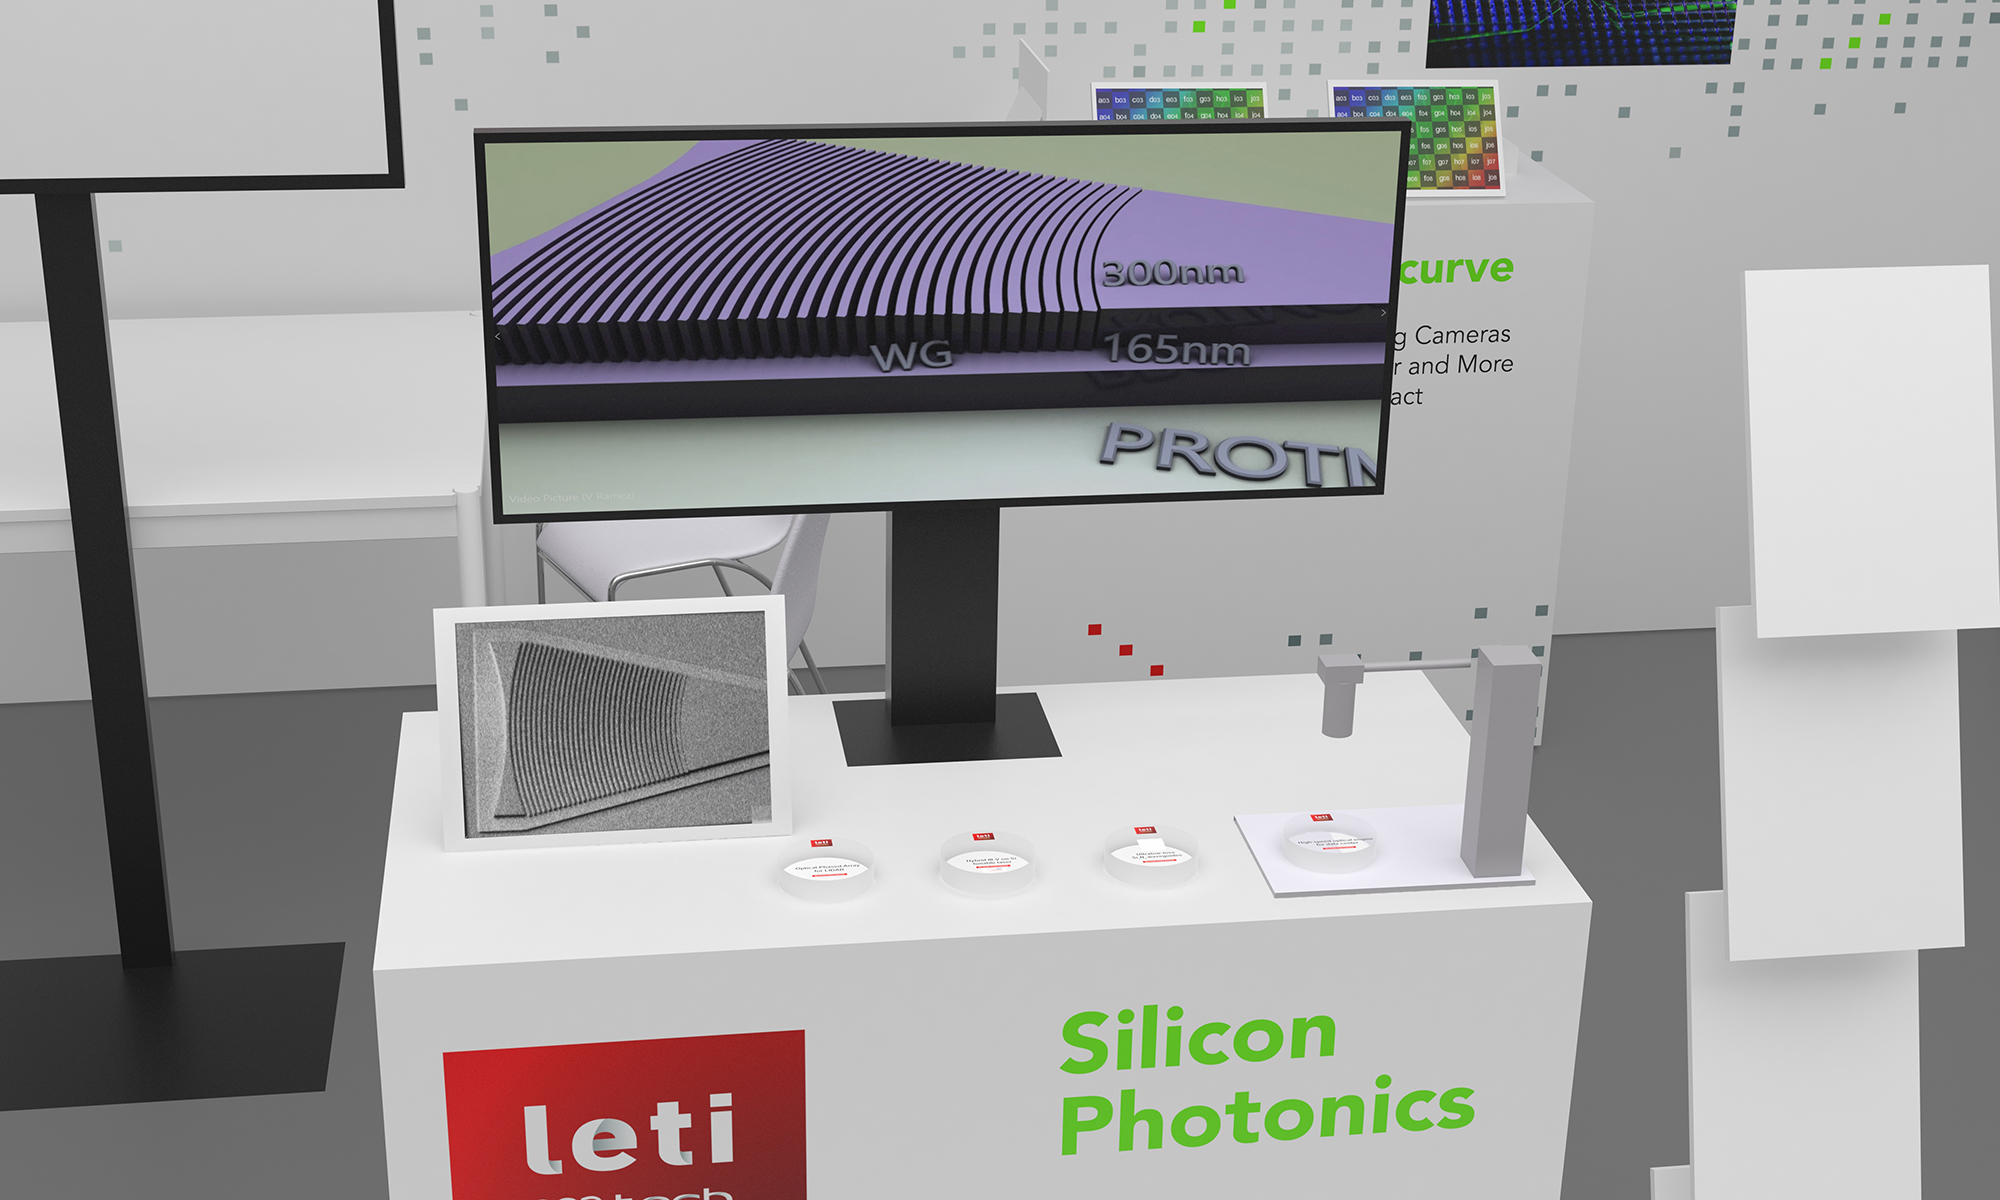 CEA-Leti Clears a Path to Developing Ultralow Loss, High-Power Photonics in UV through Mid-Infrared Wavelengths